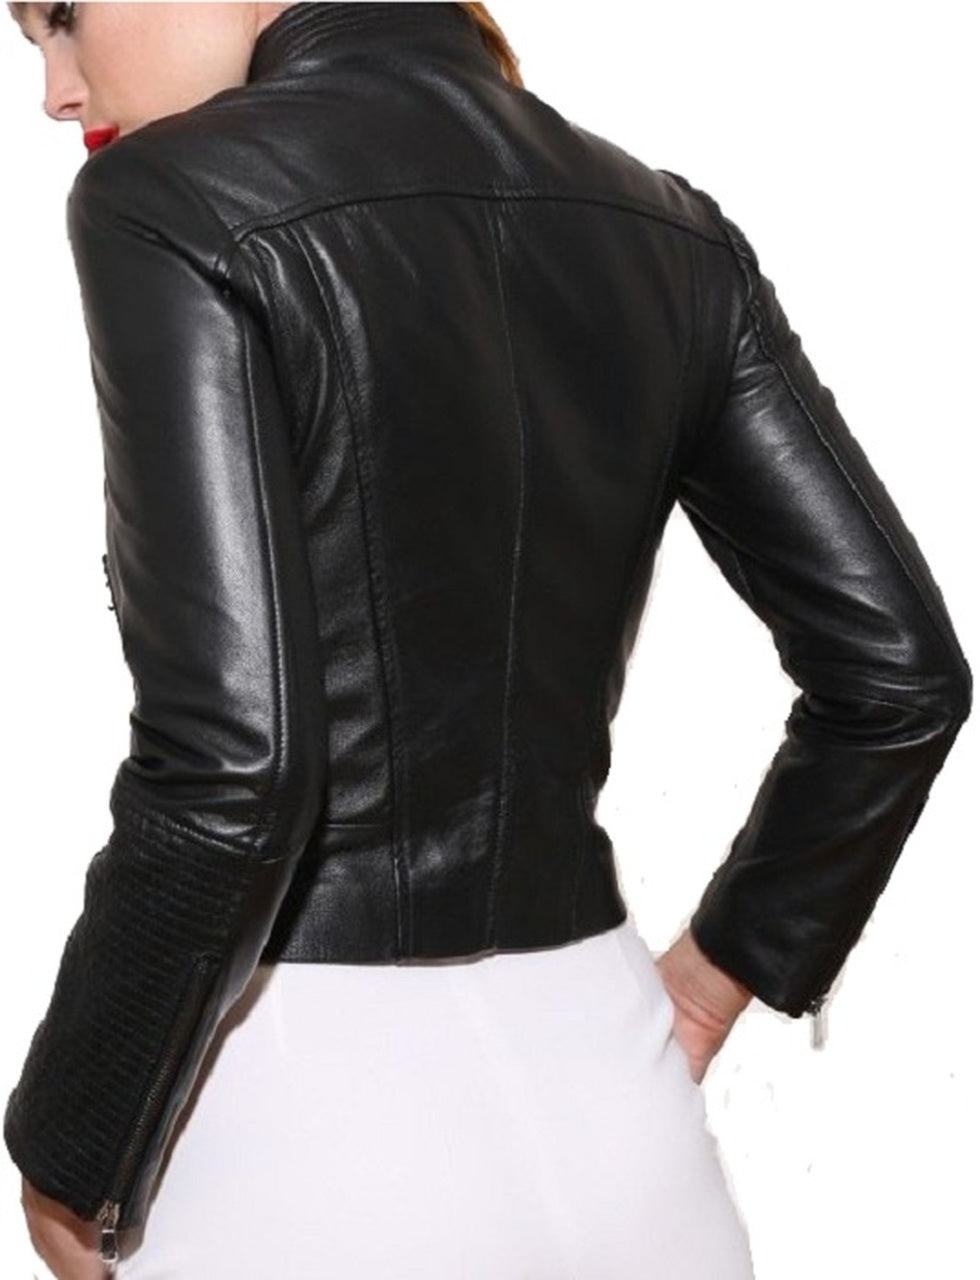 Women's Style Biker Black Leather Jacket